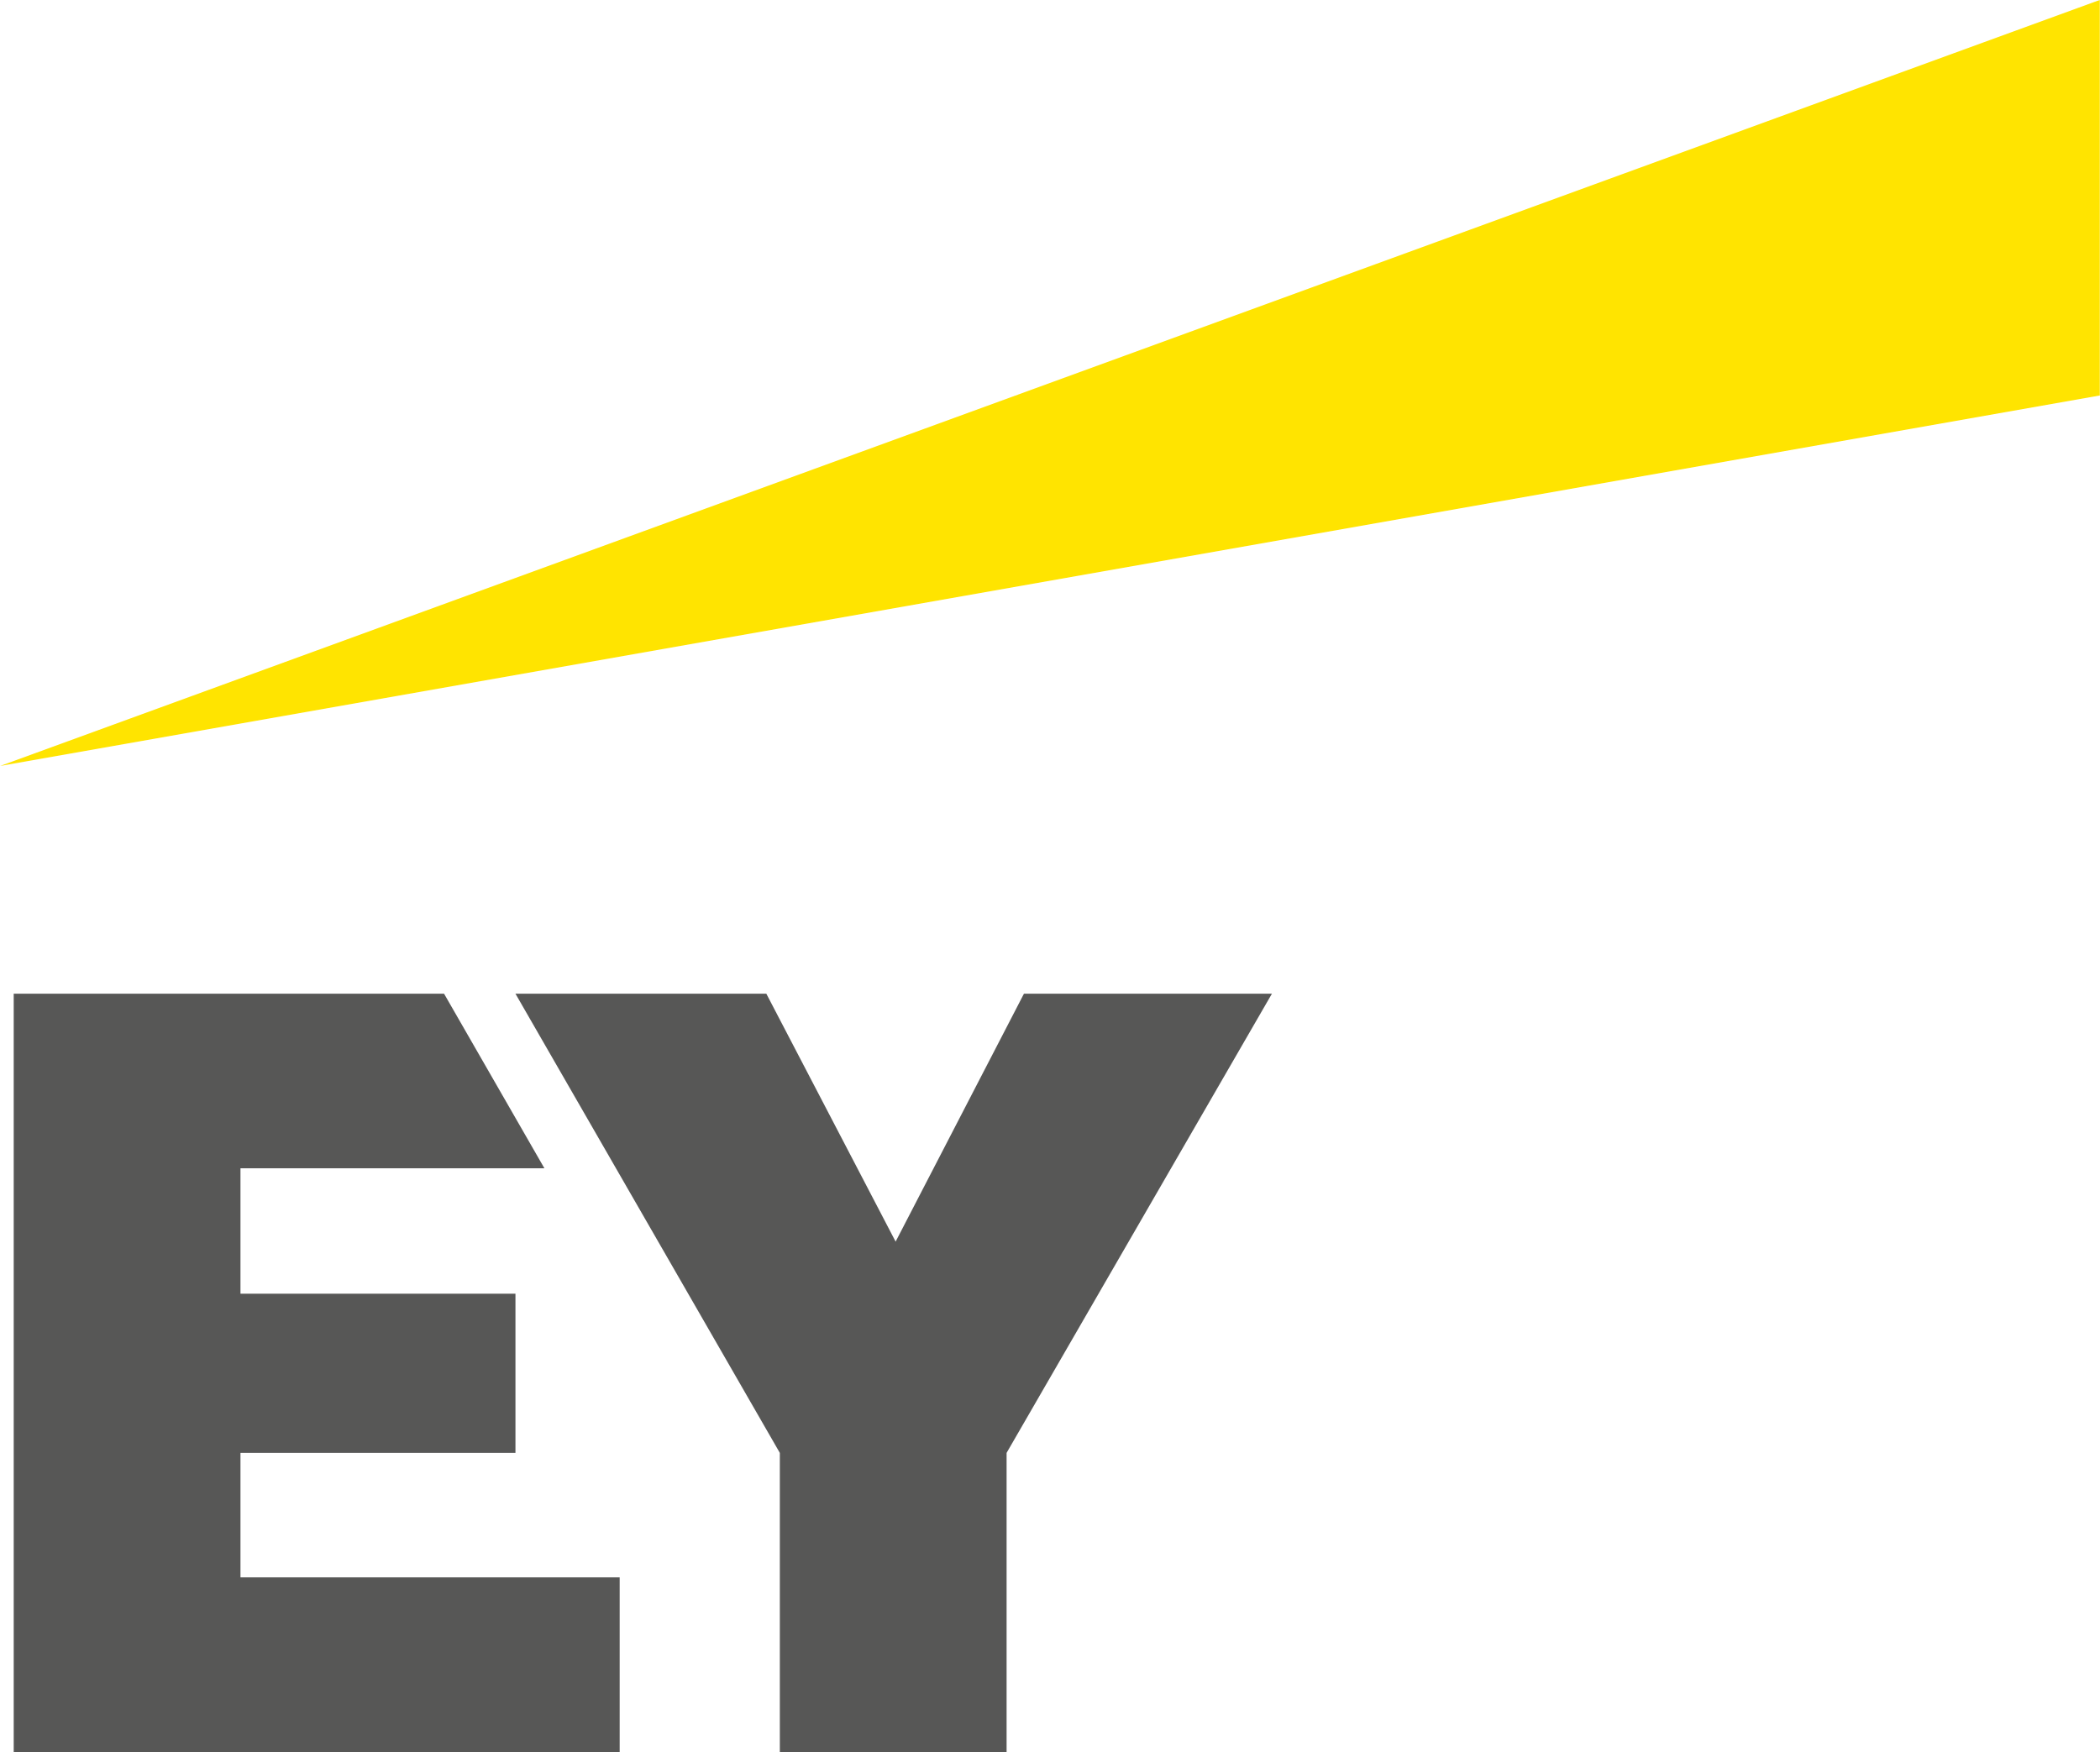 ernst-young-ey.png